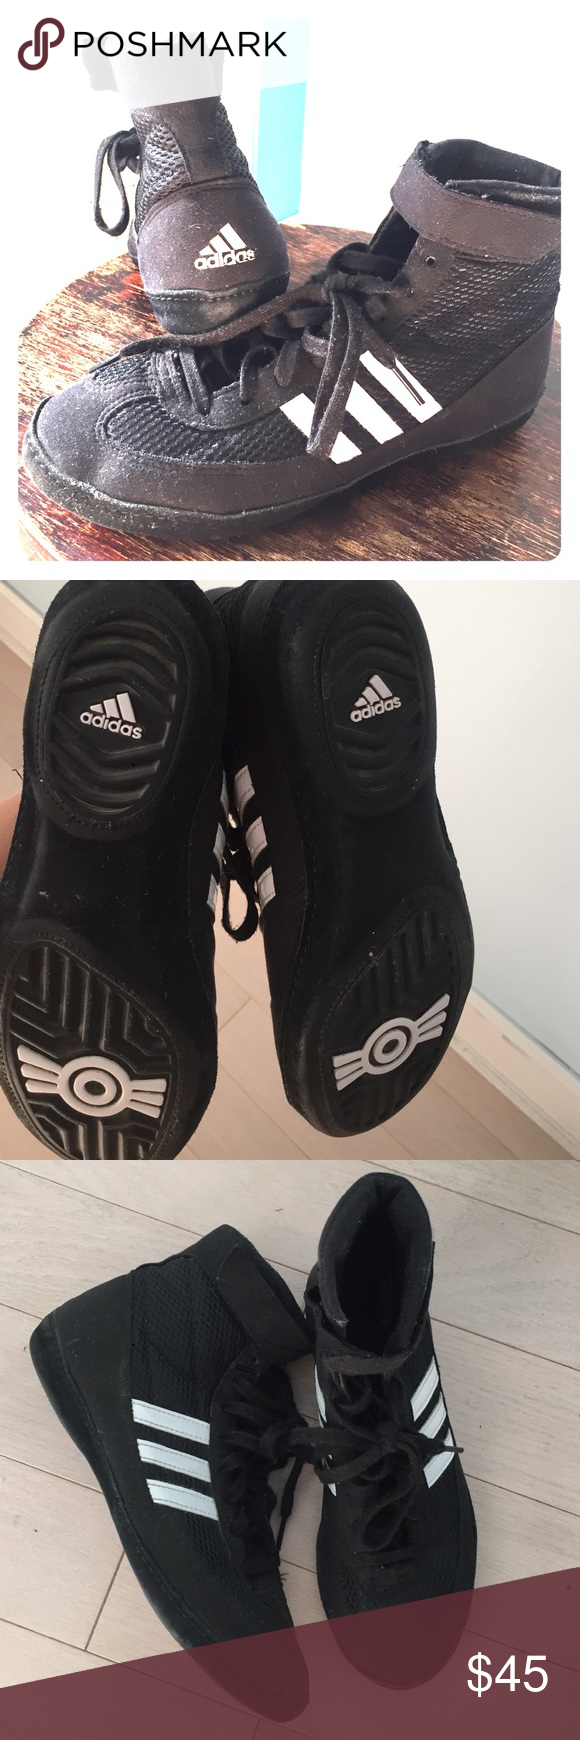 Adidas boys boxing sneakers Boys boxing sneakers great condition Adidas Shoes Sneakers